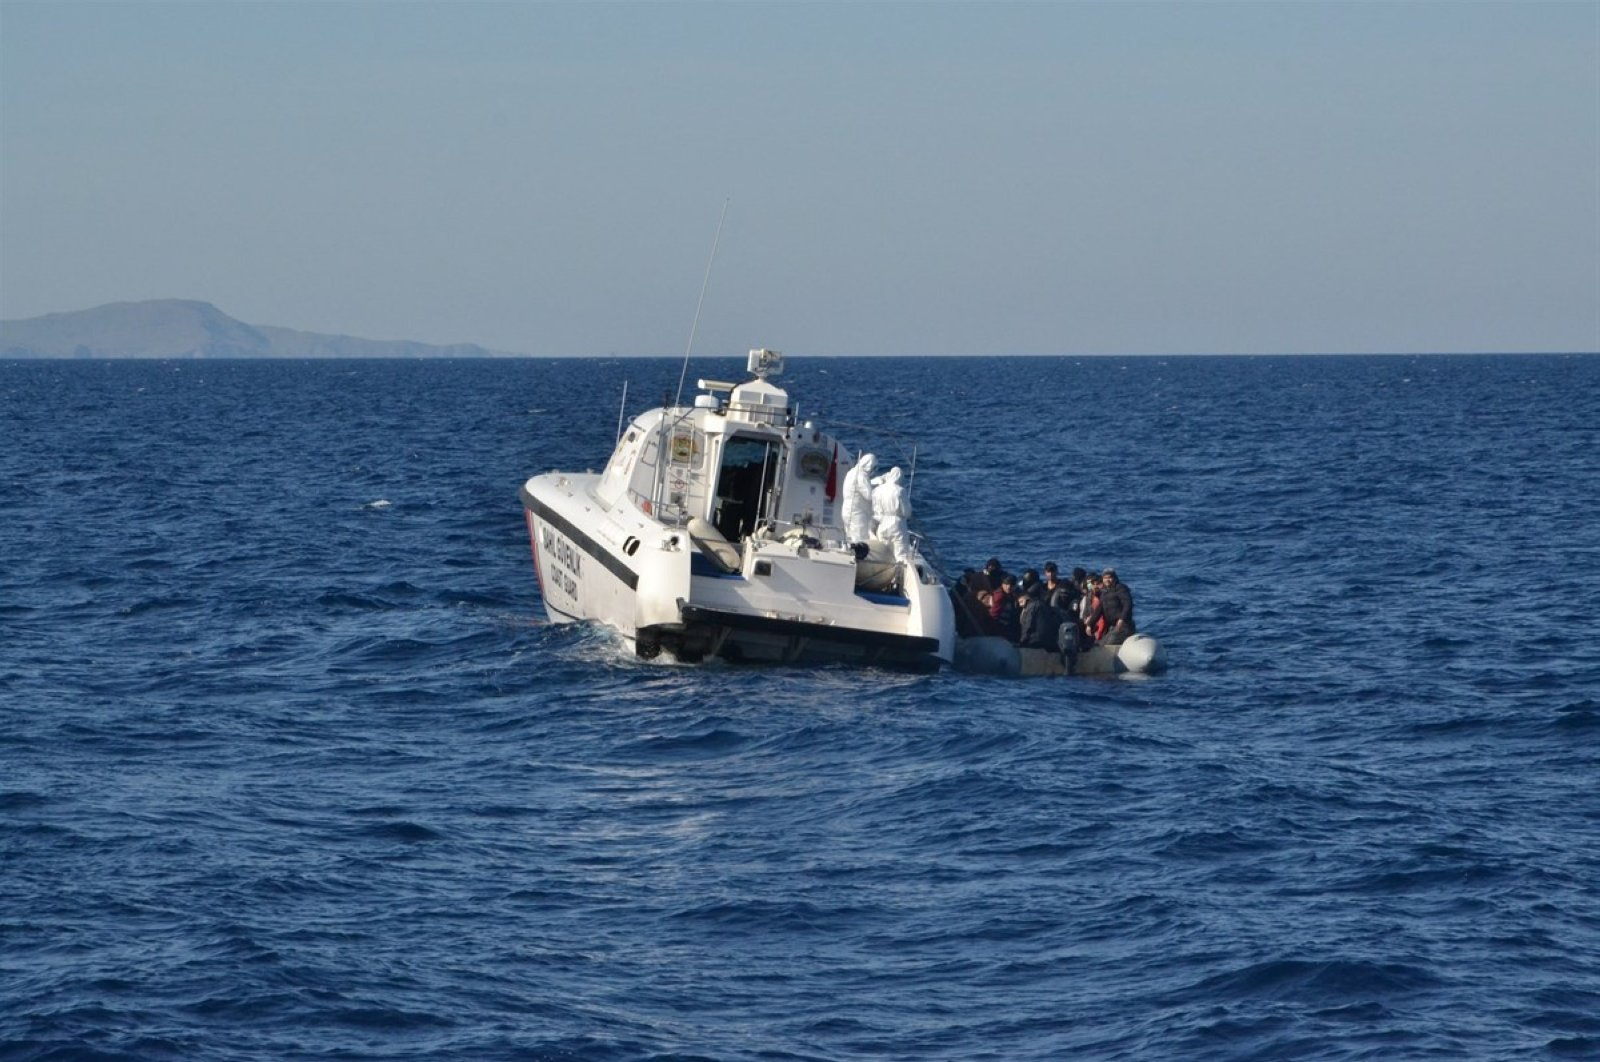 The Turkish coast guard saved the 24 migrants, from Afghanistan, Congo, Central African Republic and Mali, traveling in a rubber boat and provided them with food and clothing, Çanakkale, May 11, 2020. (IHA)